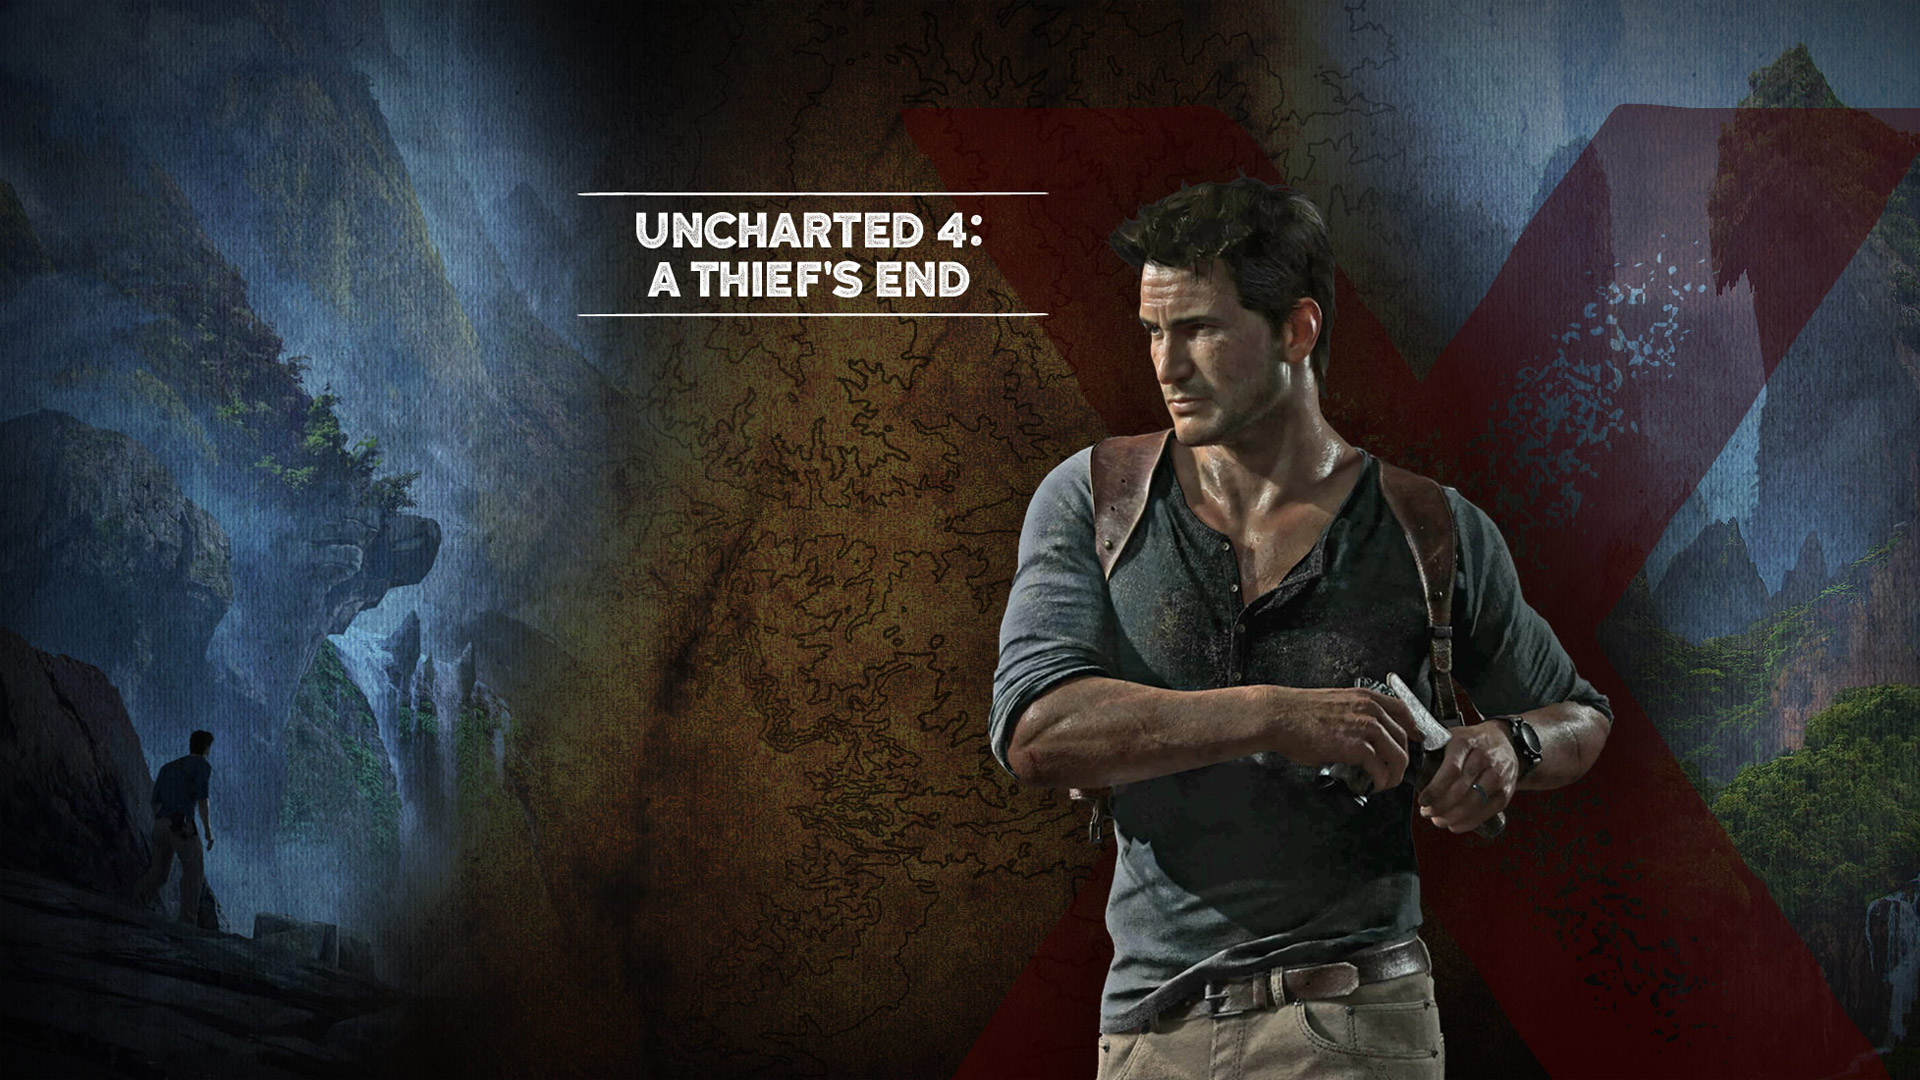 Uncharted 4 Game Hd Games 4k Wallpapers Images Backgrounds